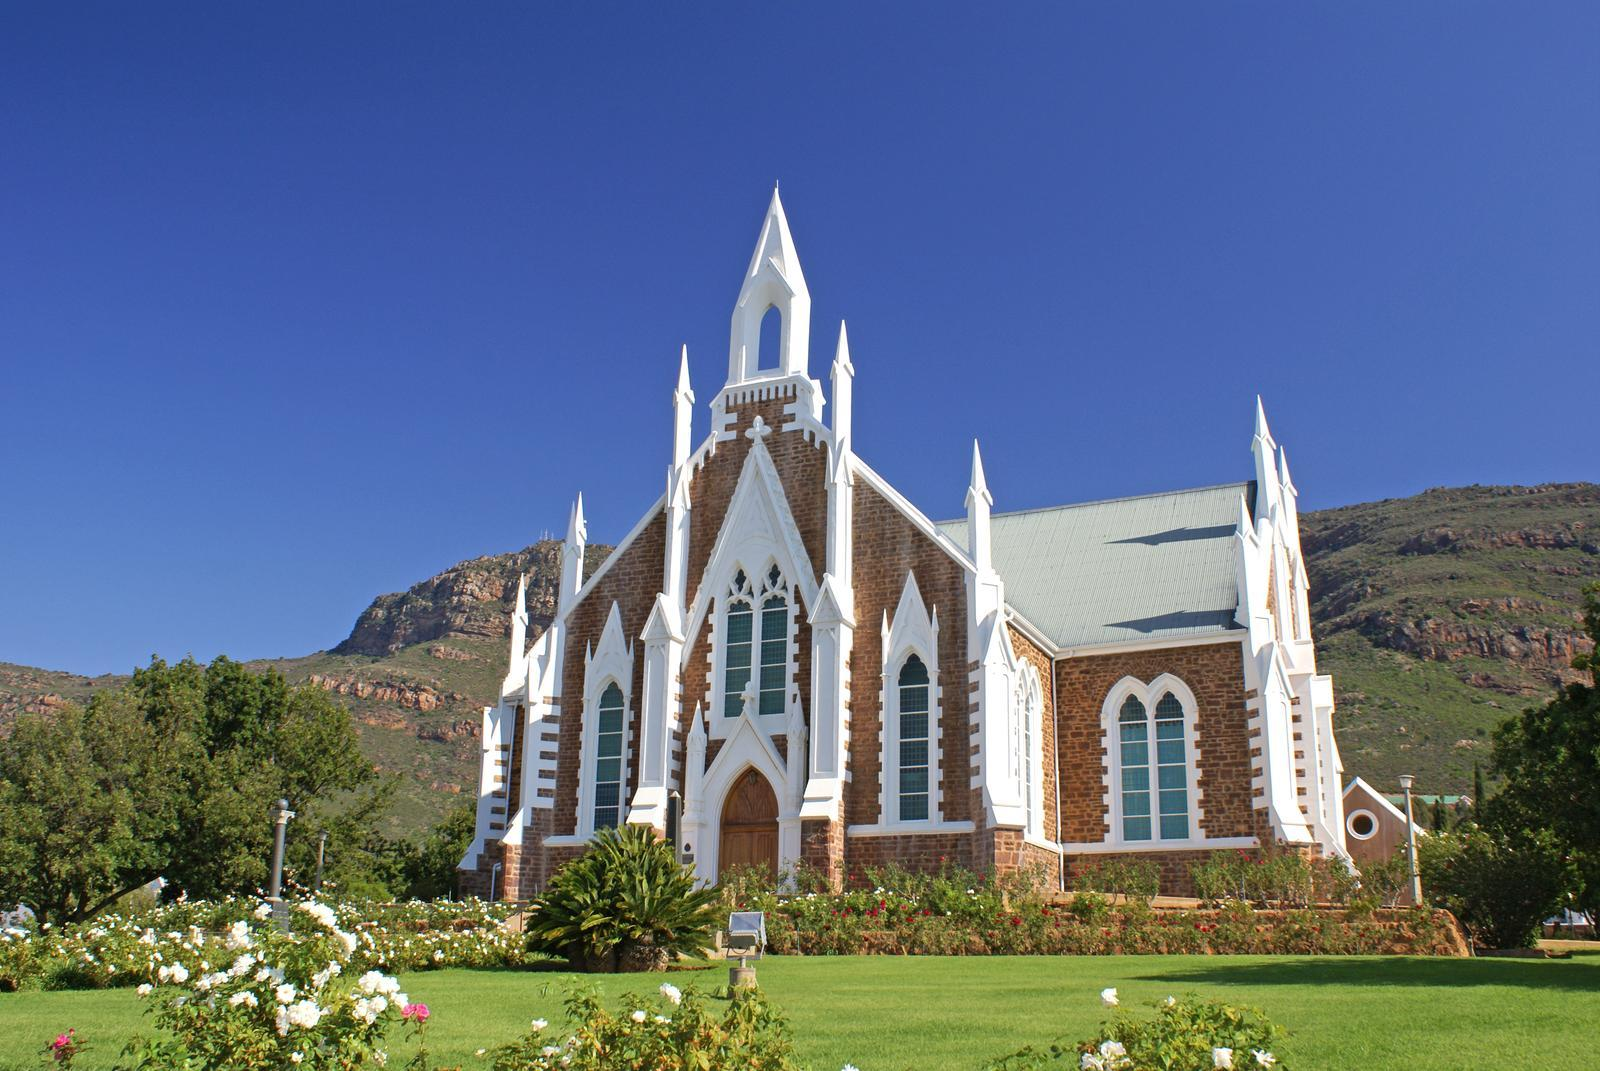 http://ministry-of-defense.com/wp-content/uploads/2014/11/Church_of_piketberg.jpg